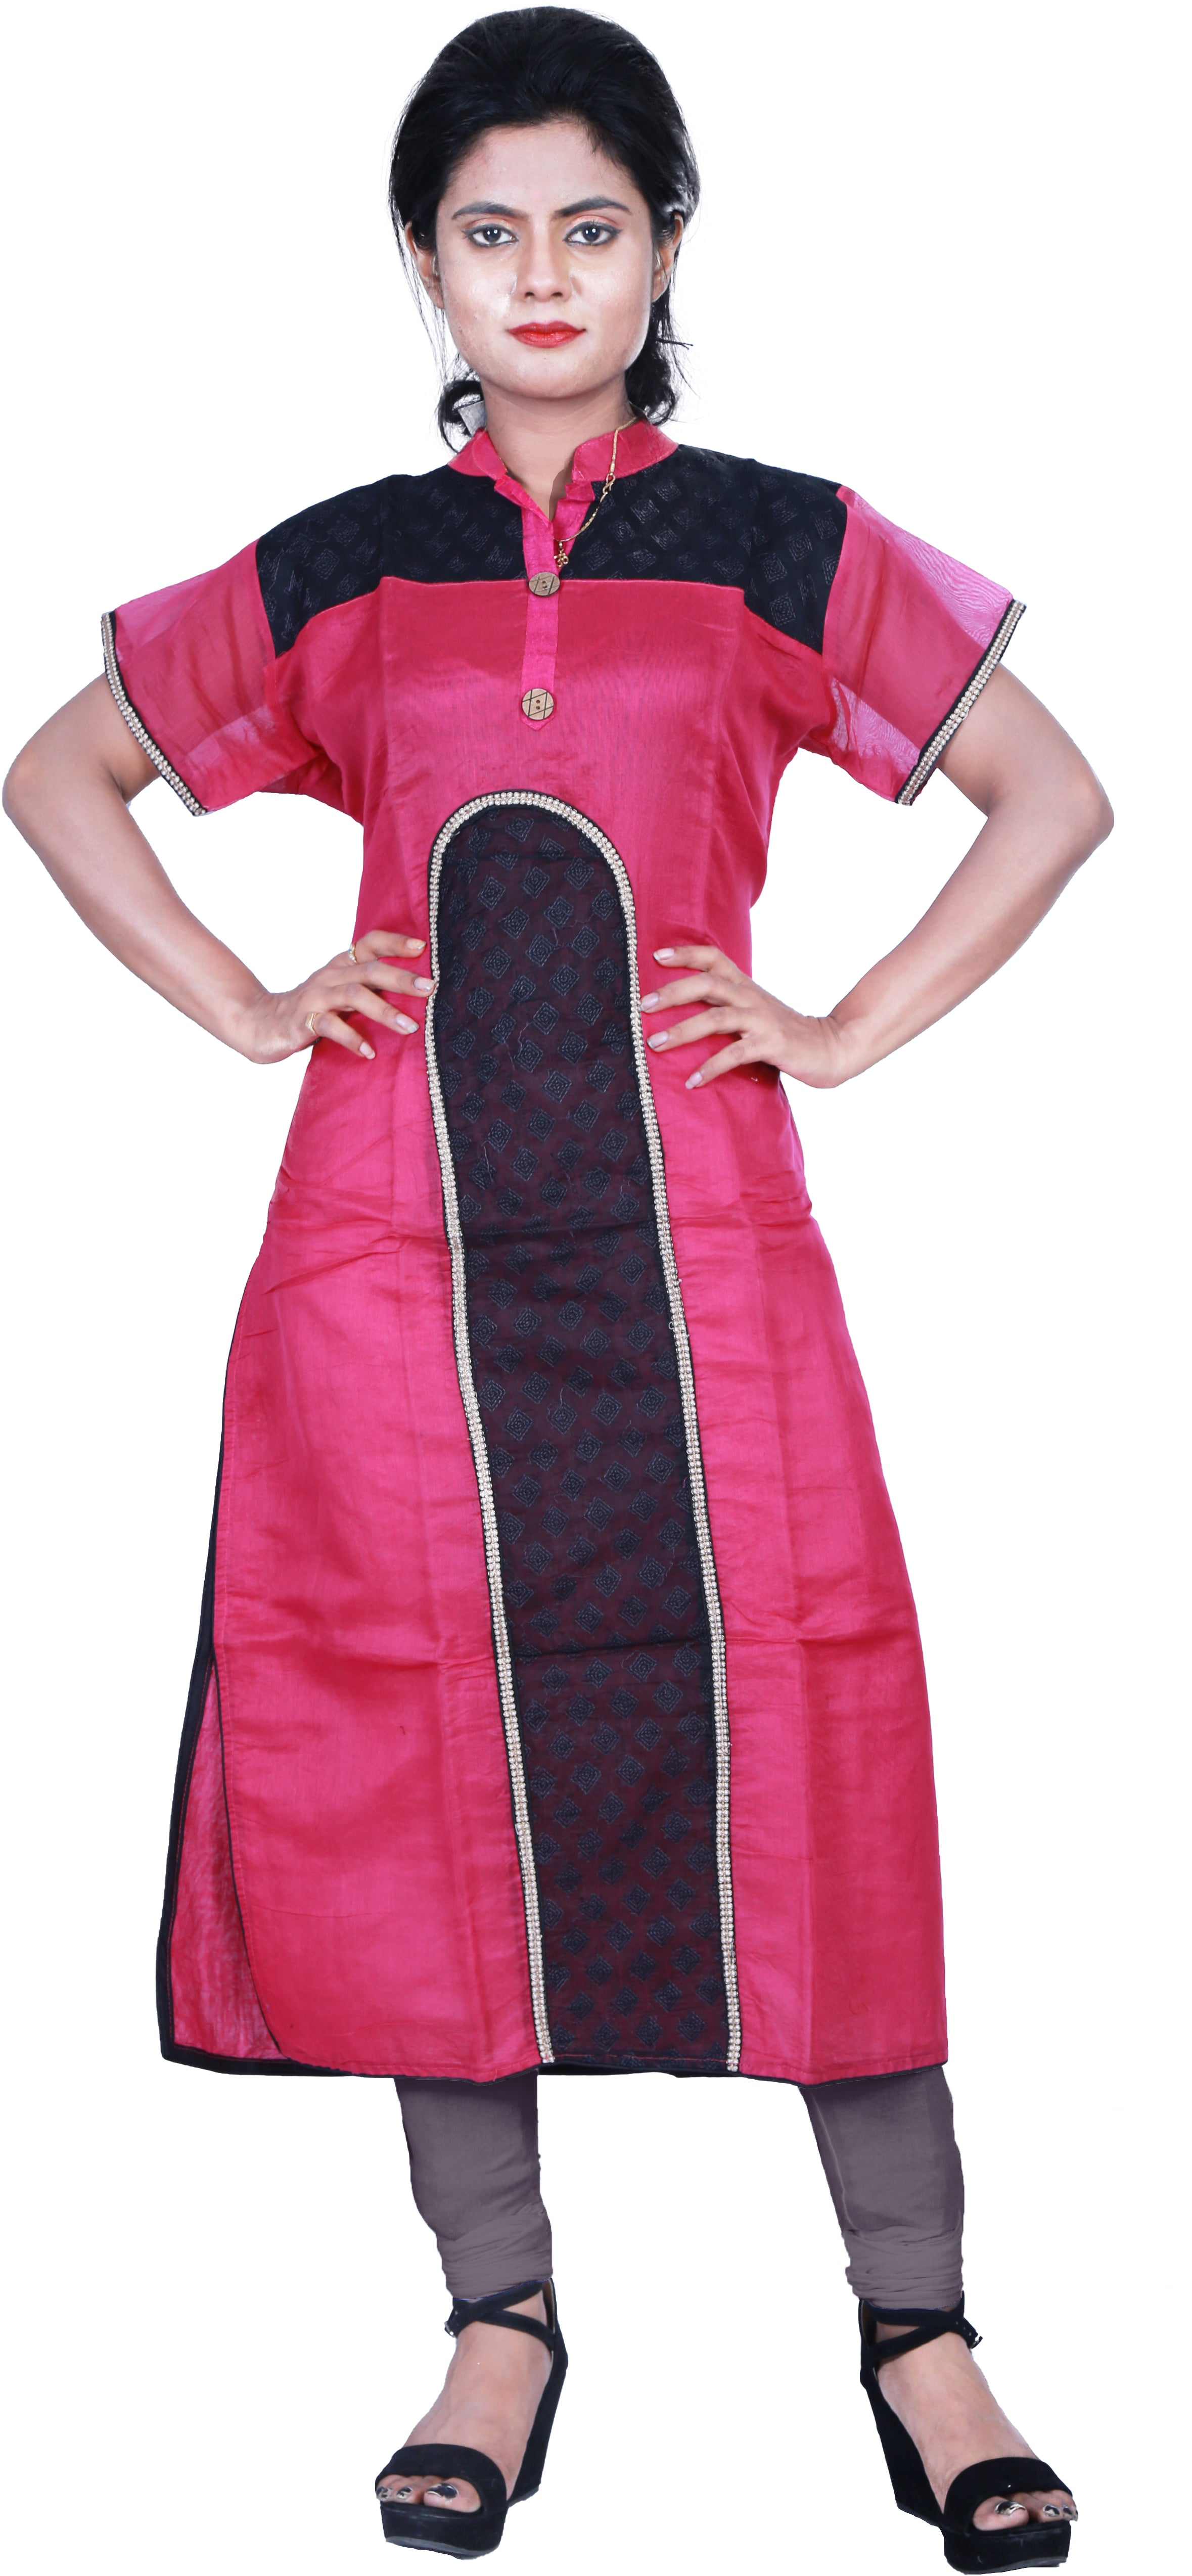 SMSAREE Pink & Black Designer Casual Partywear Cotton (Chanderi) Thread Hand Embroidery Work Stylish Women Kurti Kurta With Free Matching Leggings D048